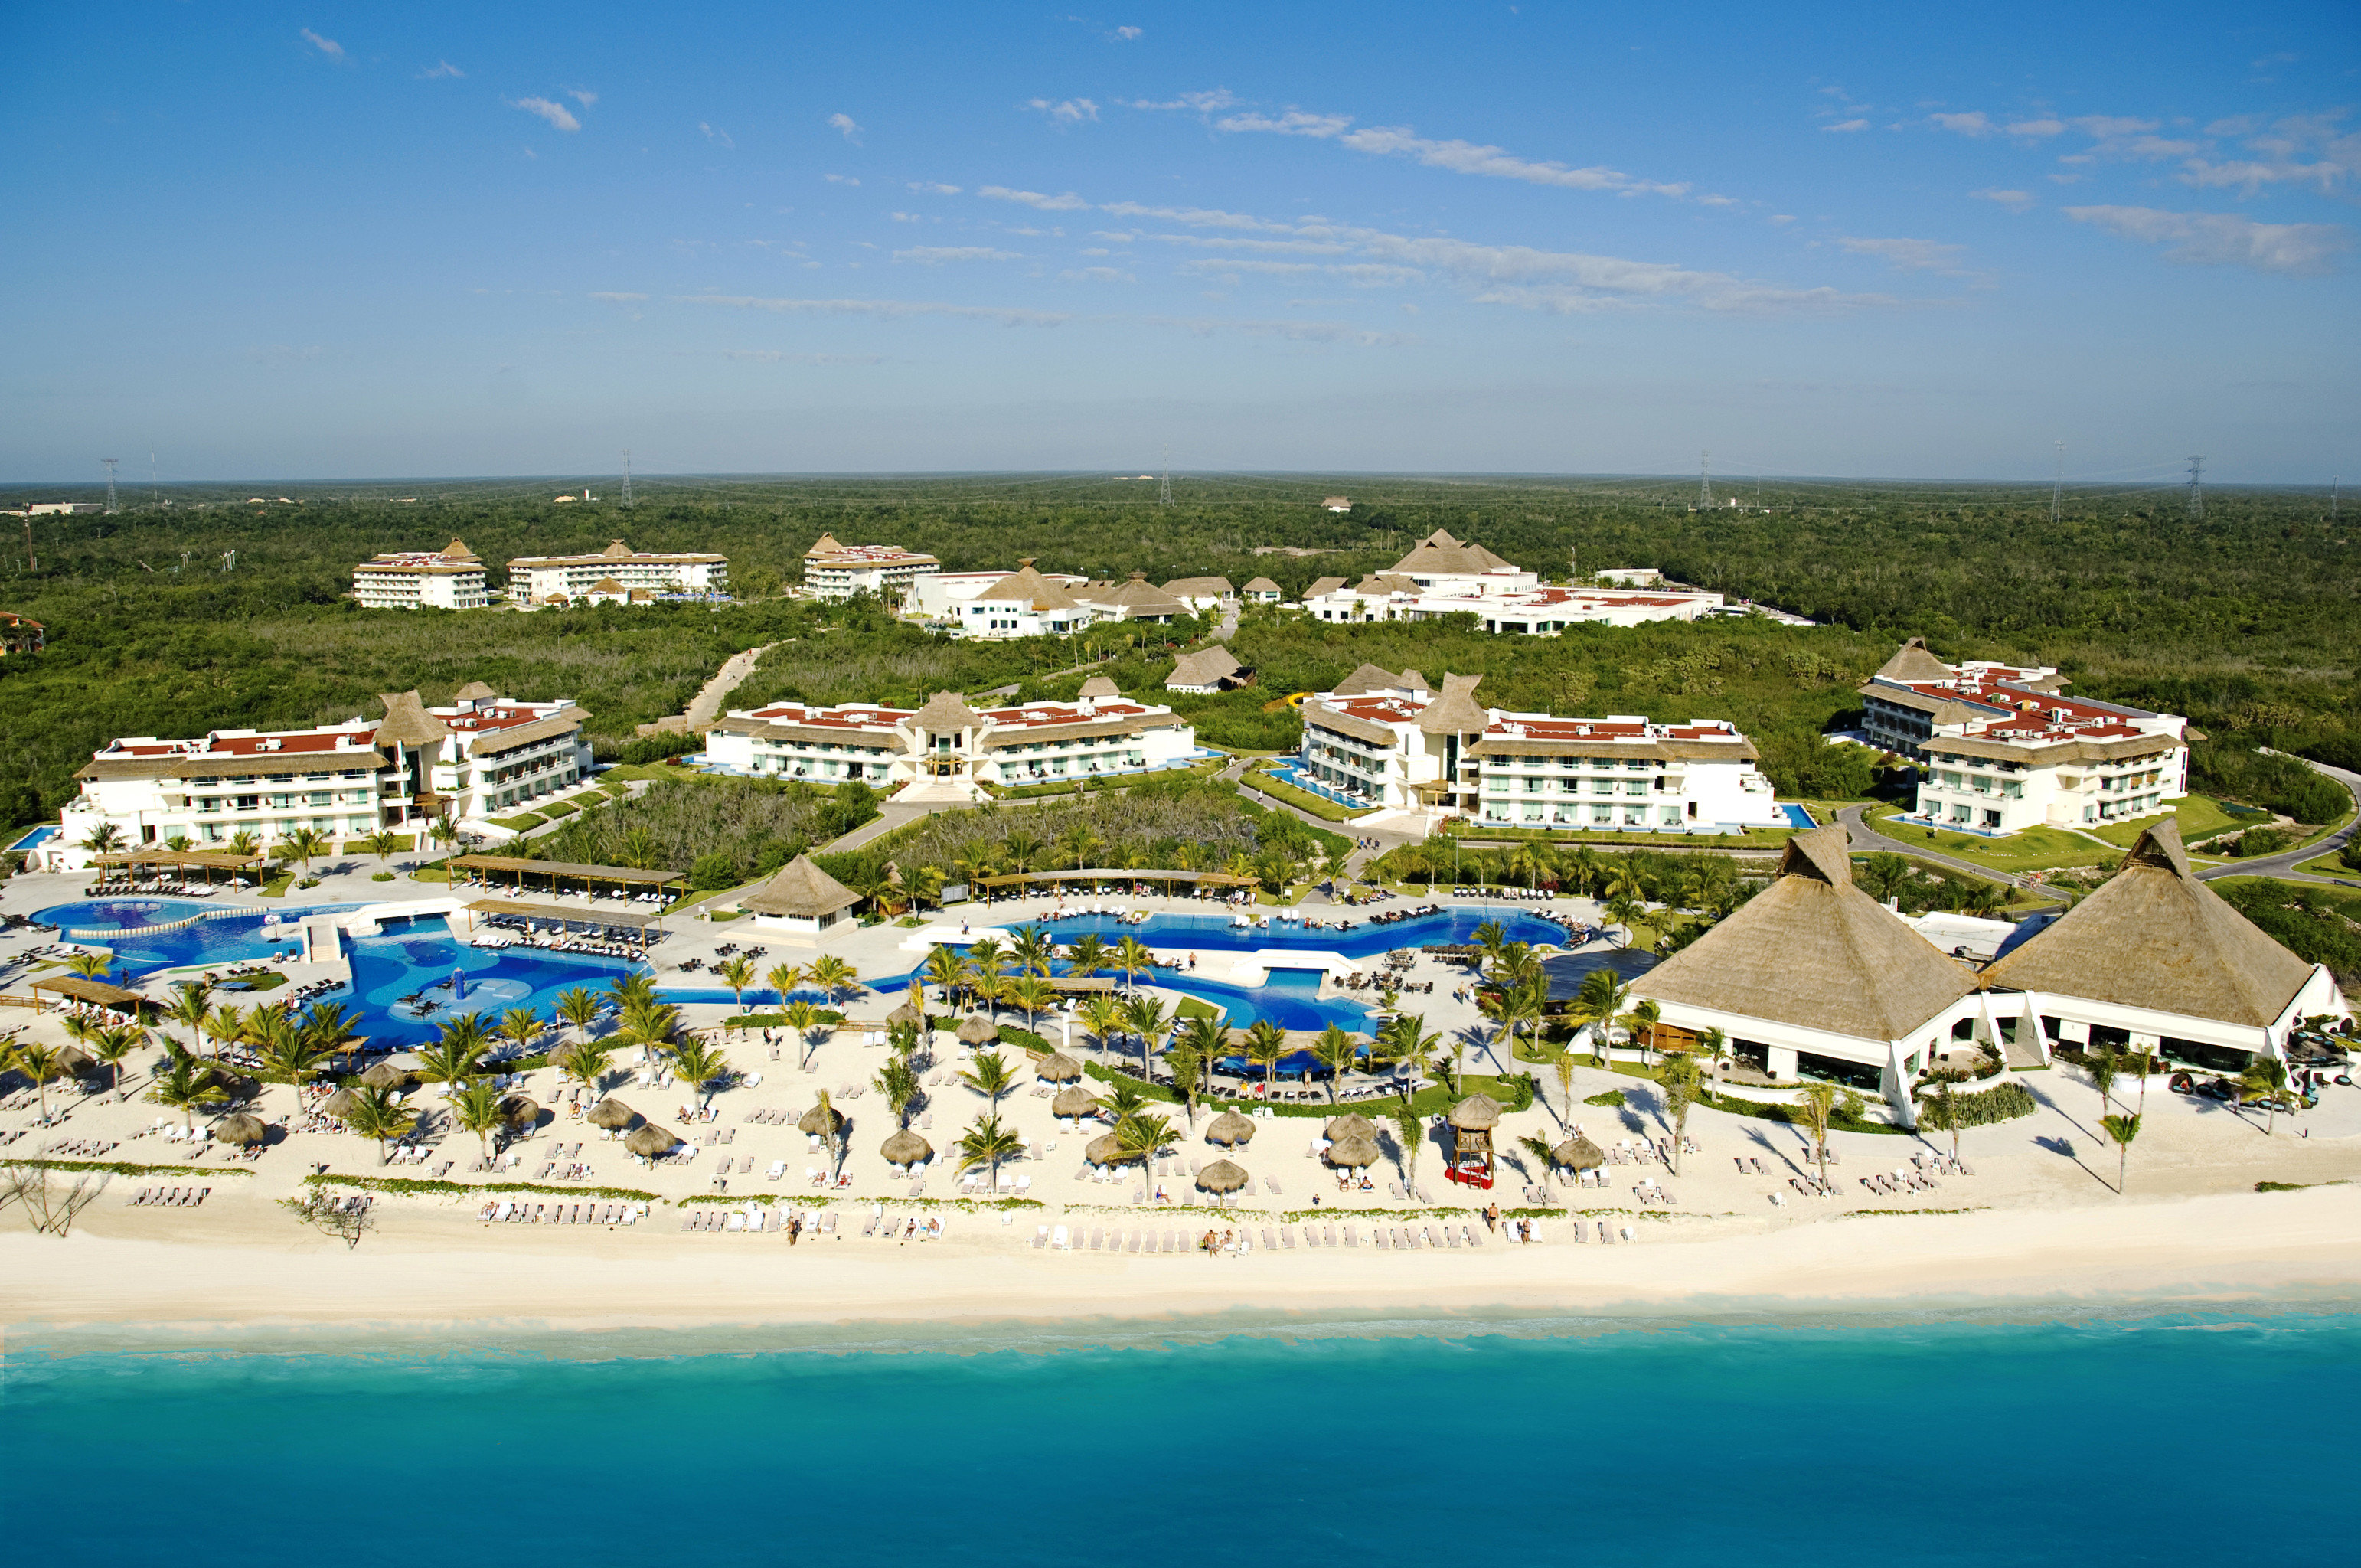 Architecture Beach Beachfront Buildings Exterior Grounds Lounge Luxury Ocean sky water Sea Nature Coast shore caribbean Island aerial photography Resort cape lined sandy